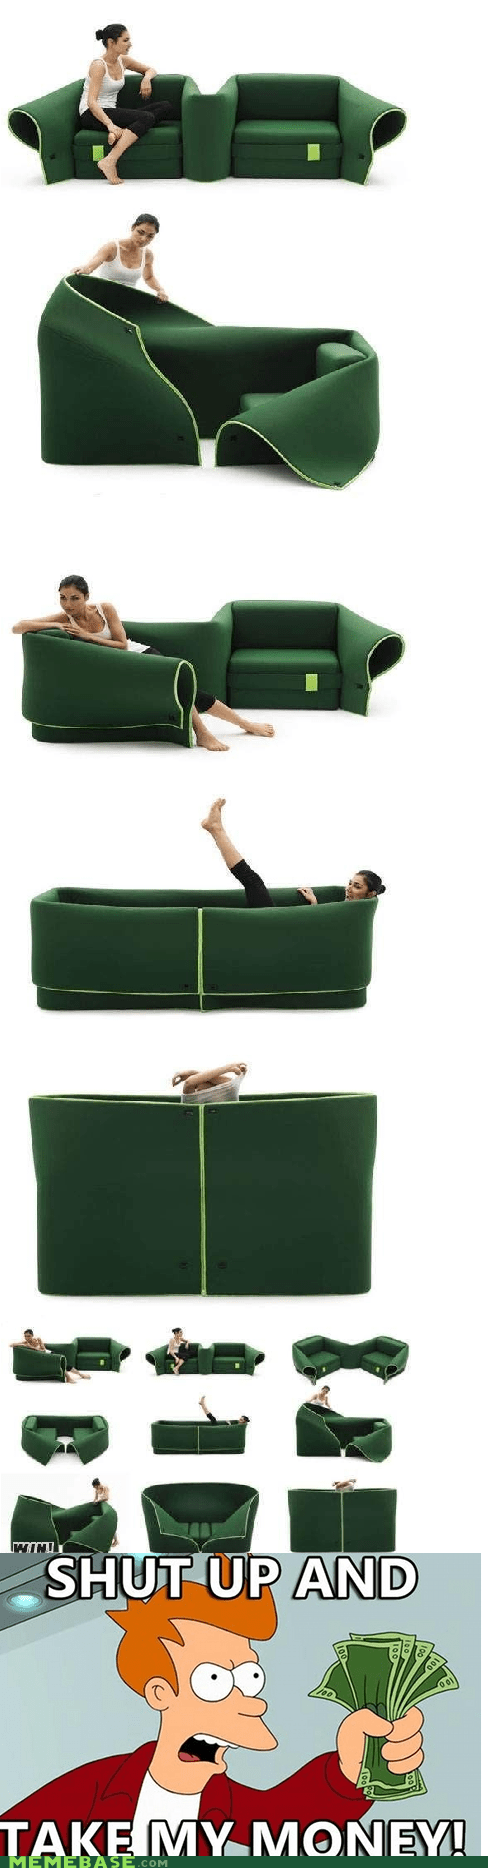 cool couch fry shut up and take my money - 6190922752